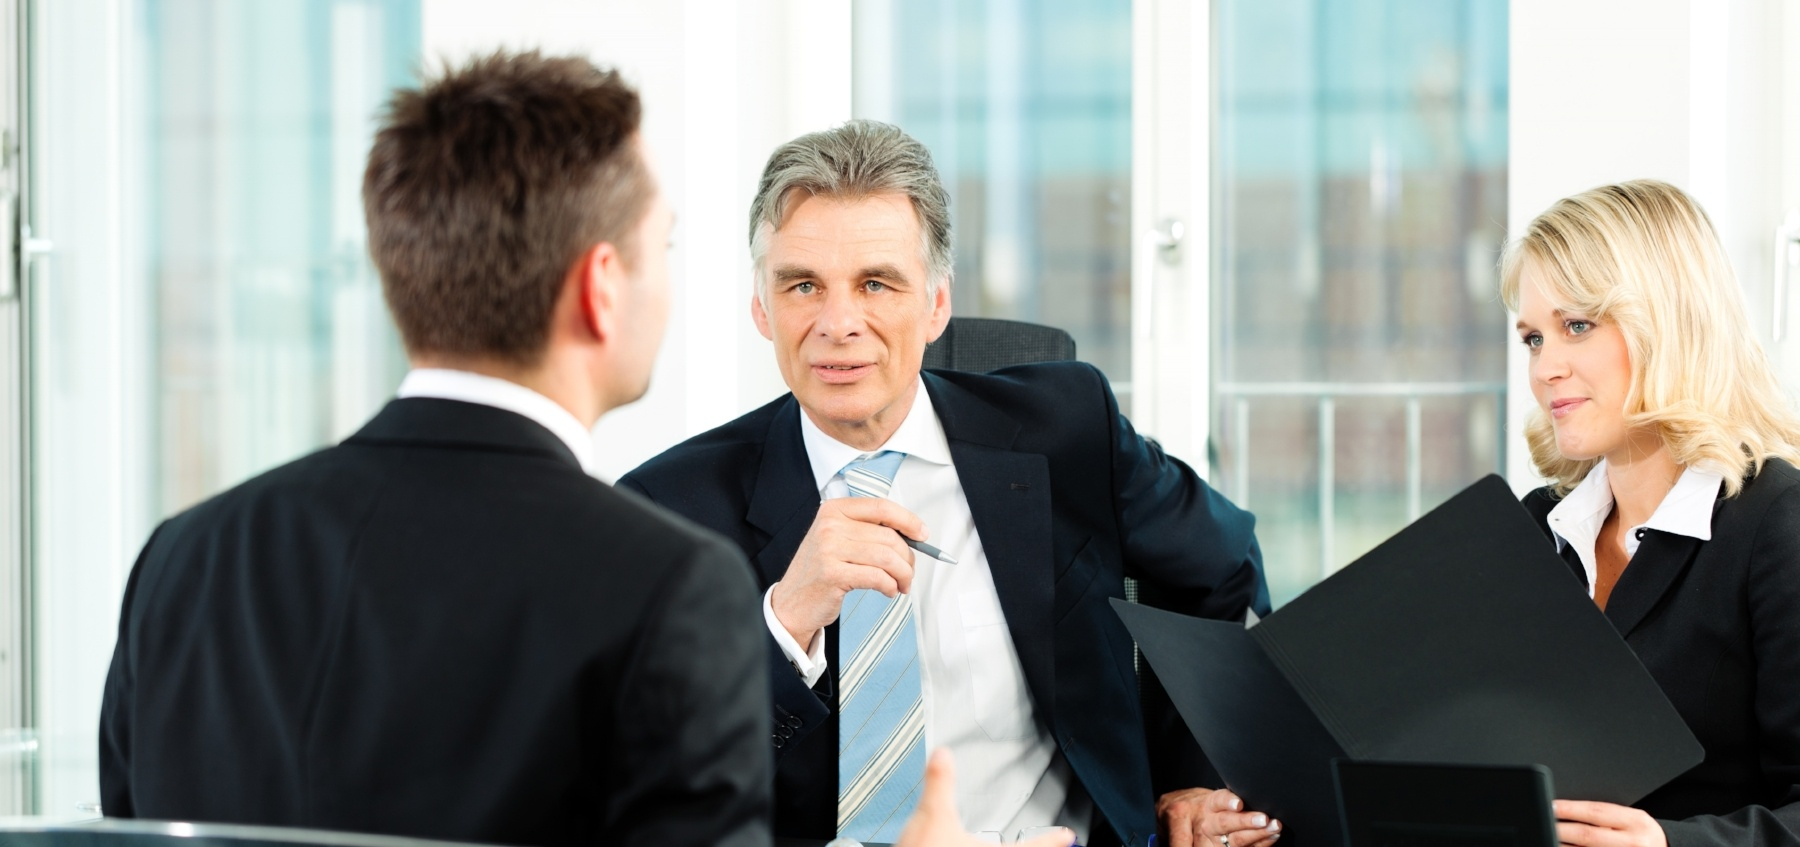 how long should an interview last